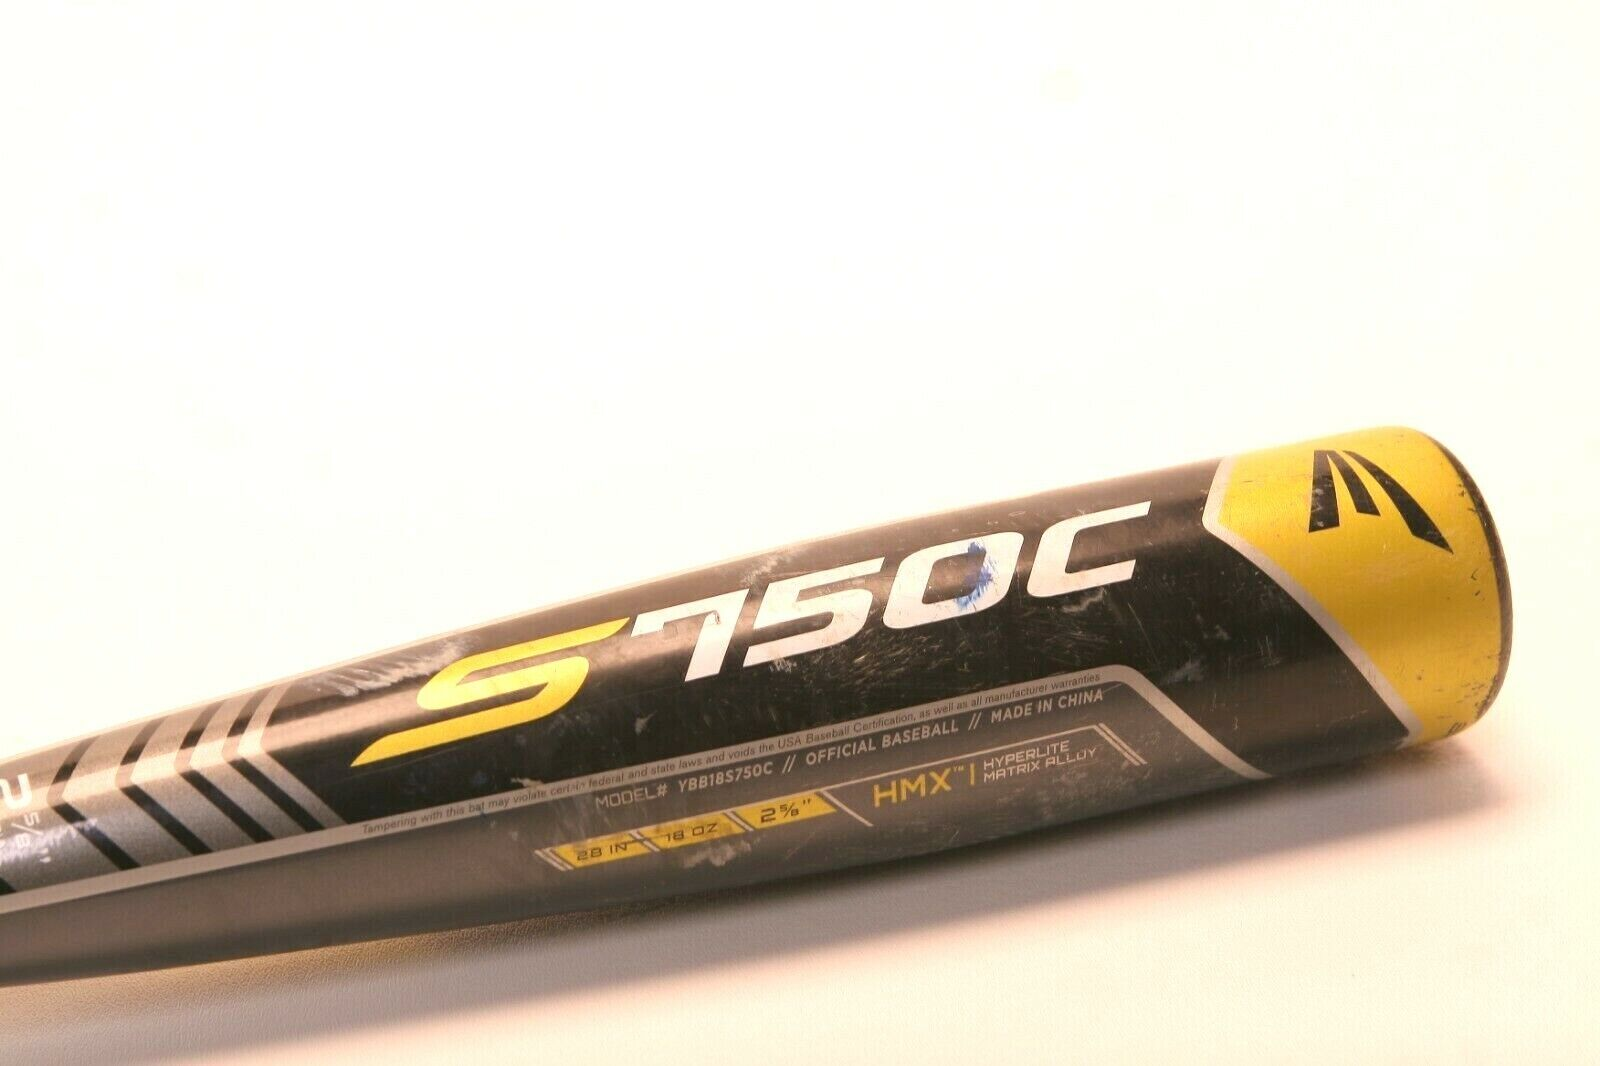 Bate De Béisbol Easton 750C 28  18oz 2 5 8  -10 YBB18S750C BE0A1907 HMX Hyperlite